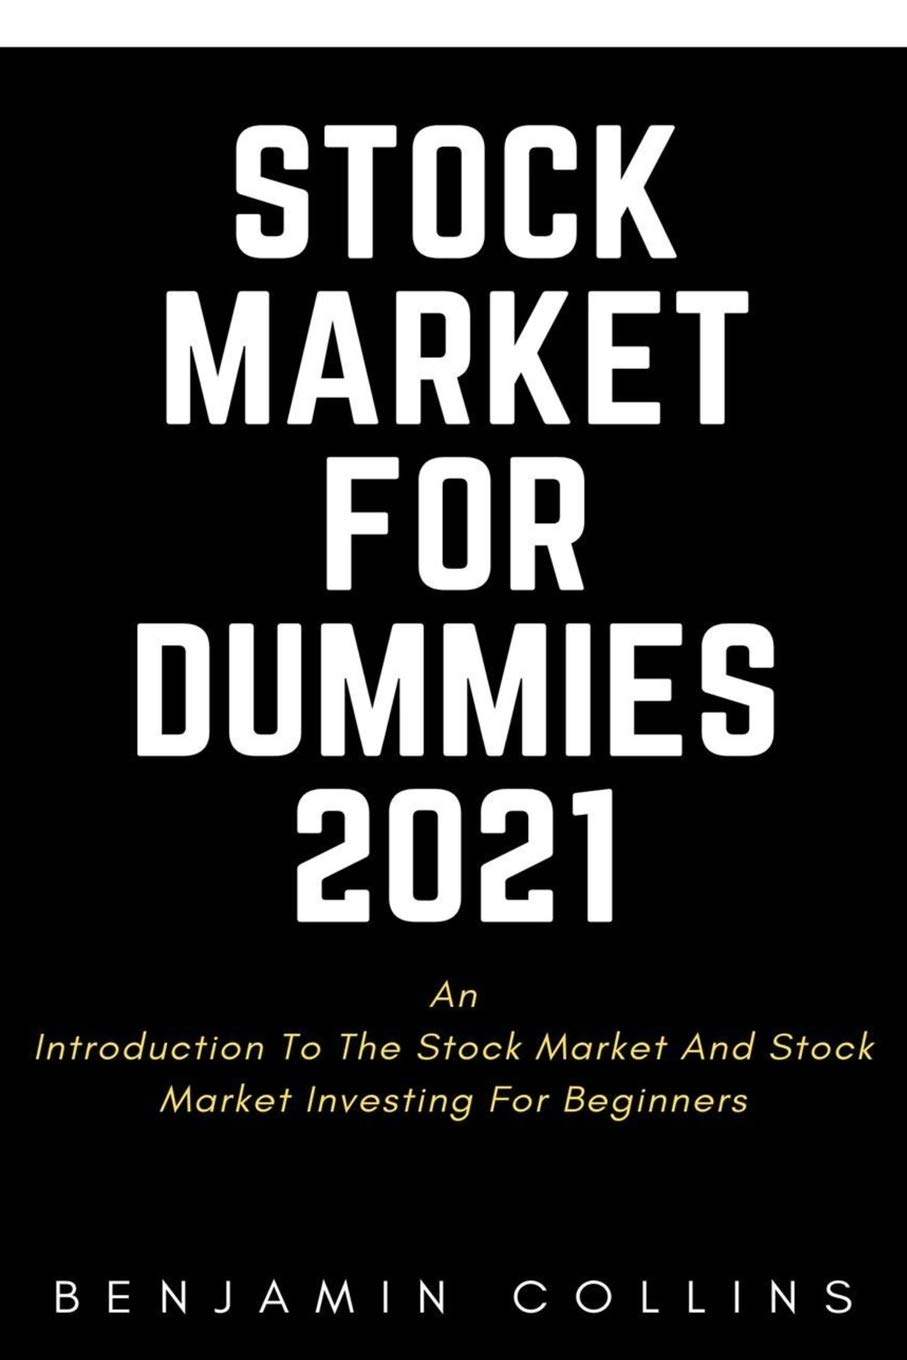 STOCK MARKET FOR DUMMIES 2021: An Introduction To The Stock Market And Stock  Market Investing For Beginners: Collins, Benjamin: 9798711093152:  Amazon.com: Books